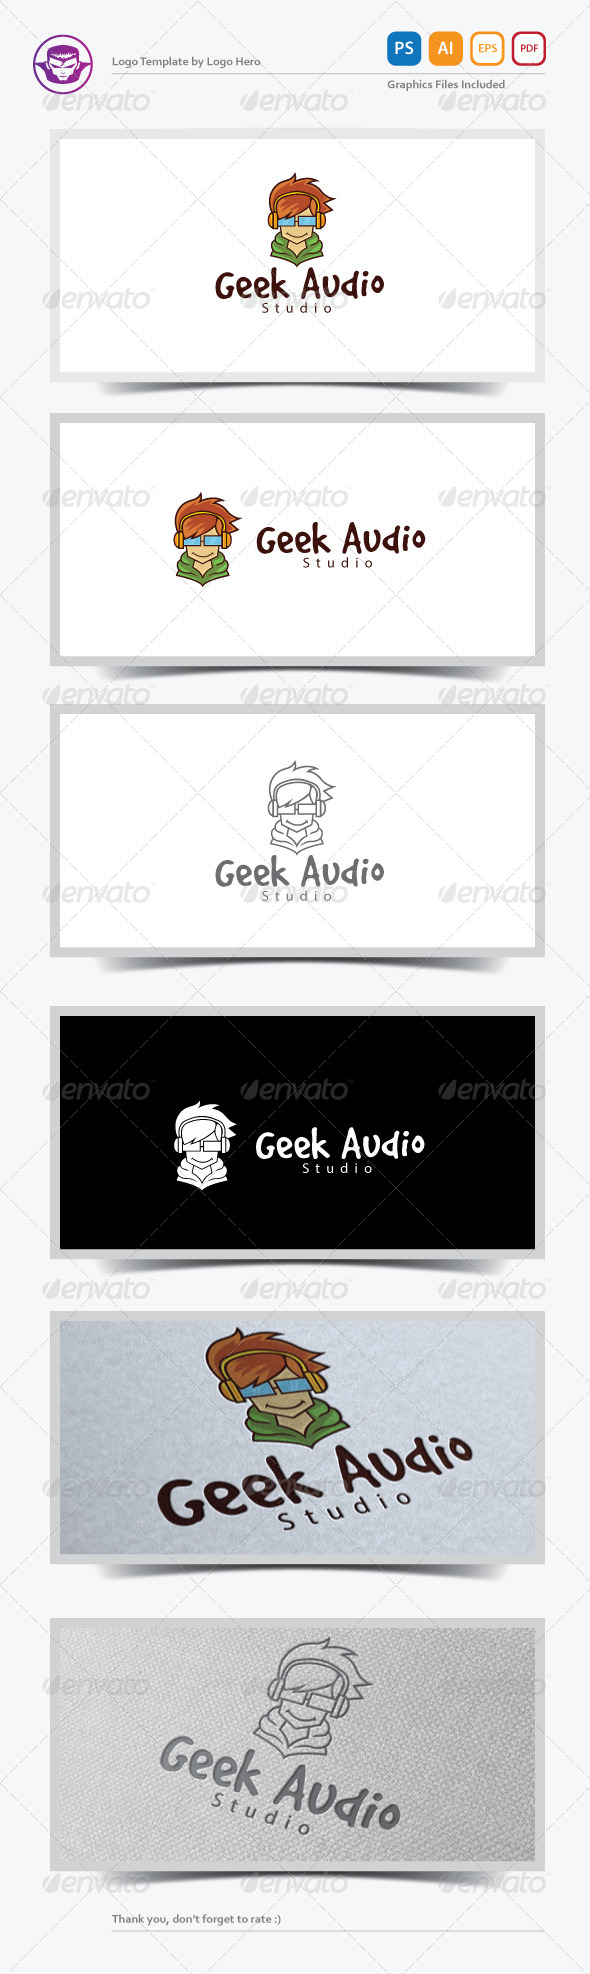 GraphicRiver Geek Audio Logo Template 7258157